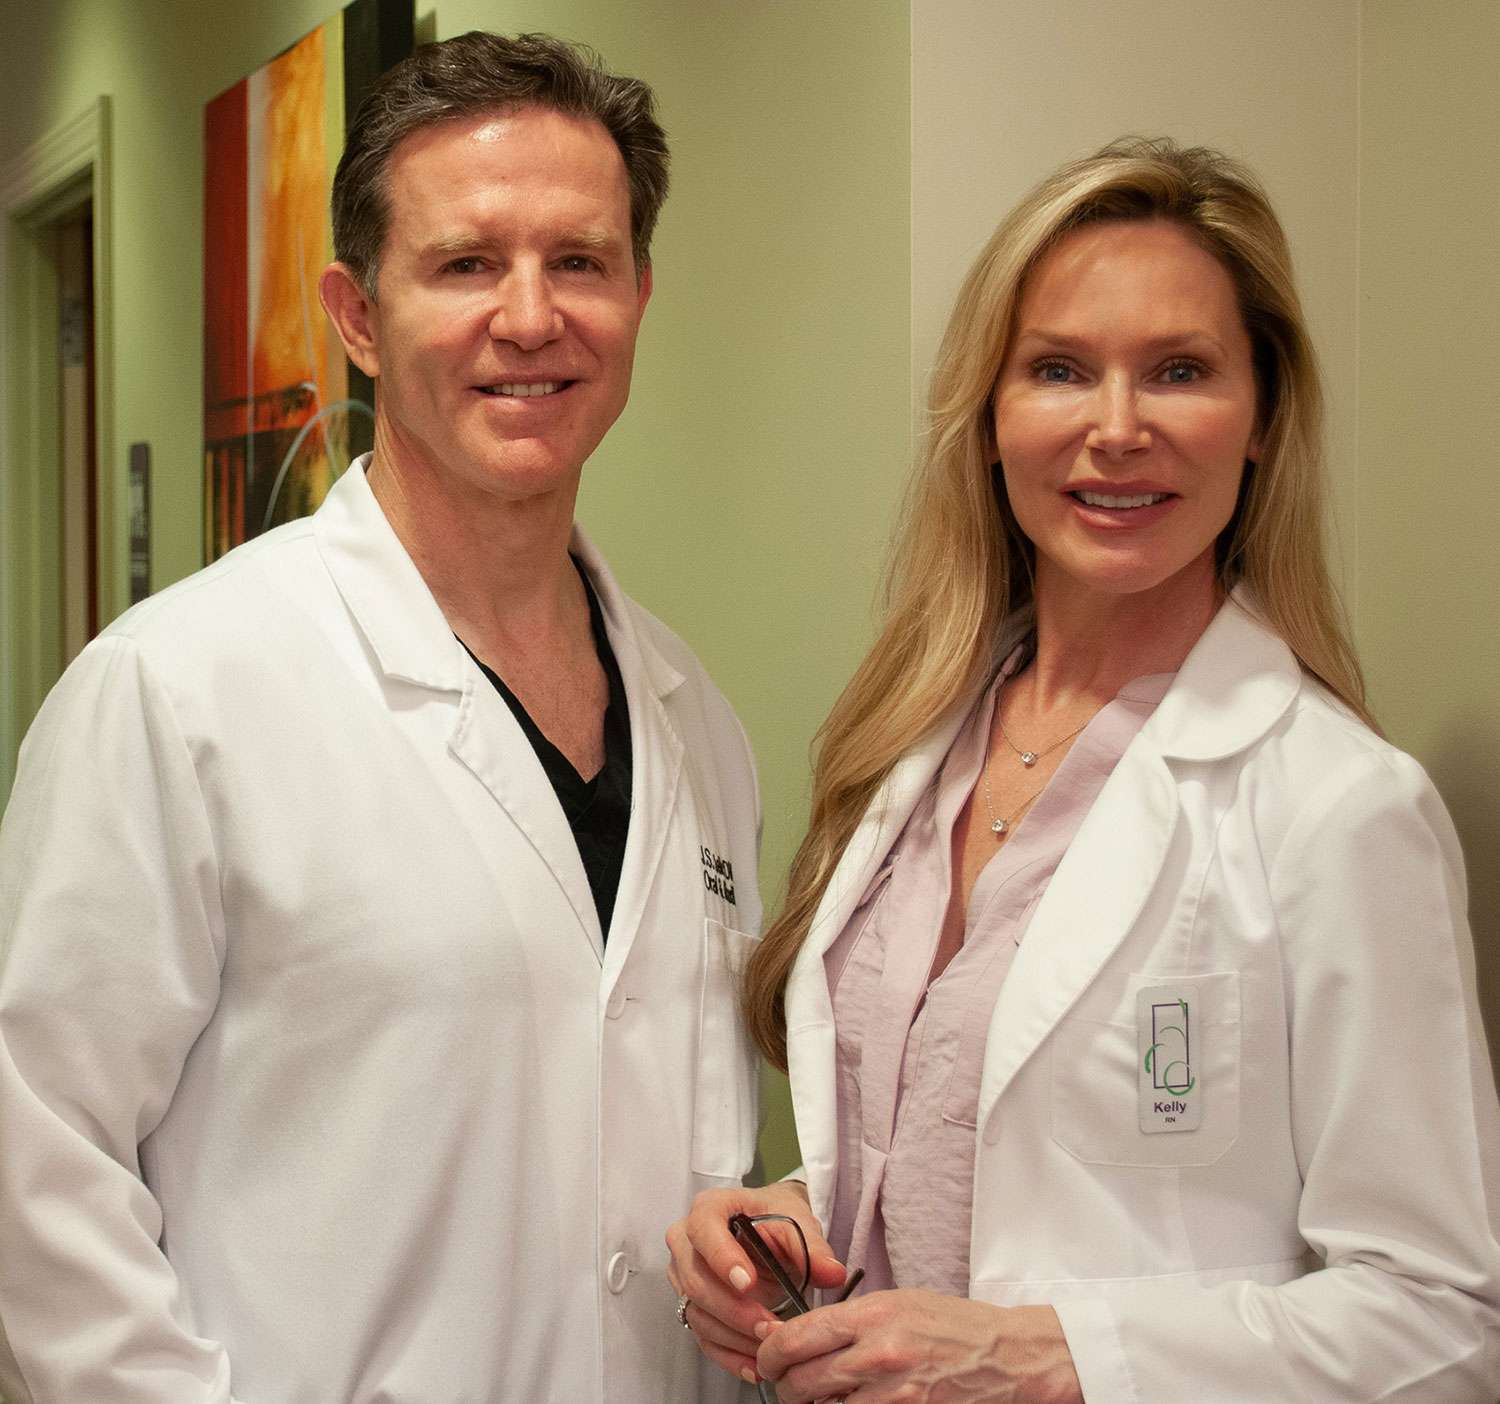 Dr. Jelic and Kelly Jelic